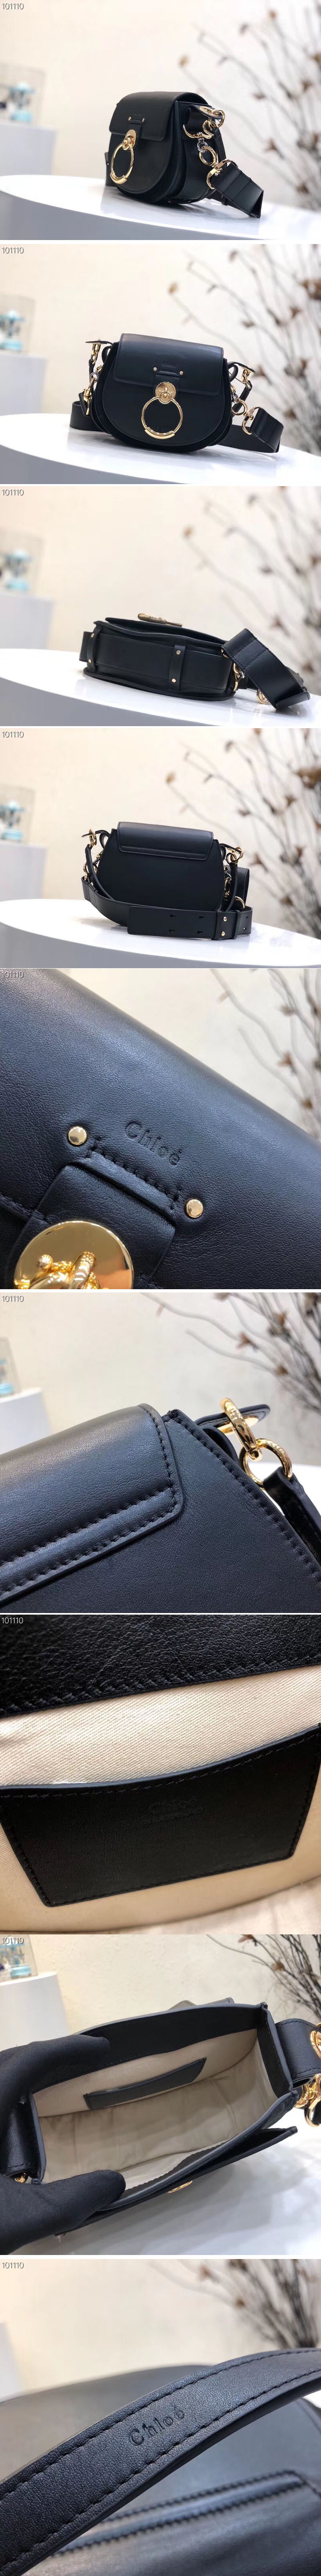 Replica Chloe Tess Small Leather Shoulder Bags Dark Blue